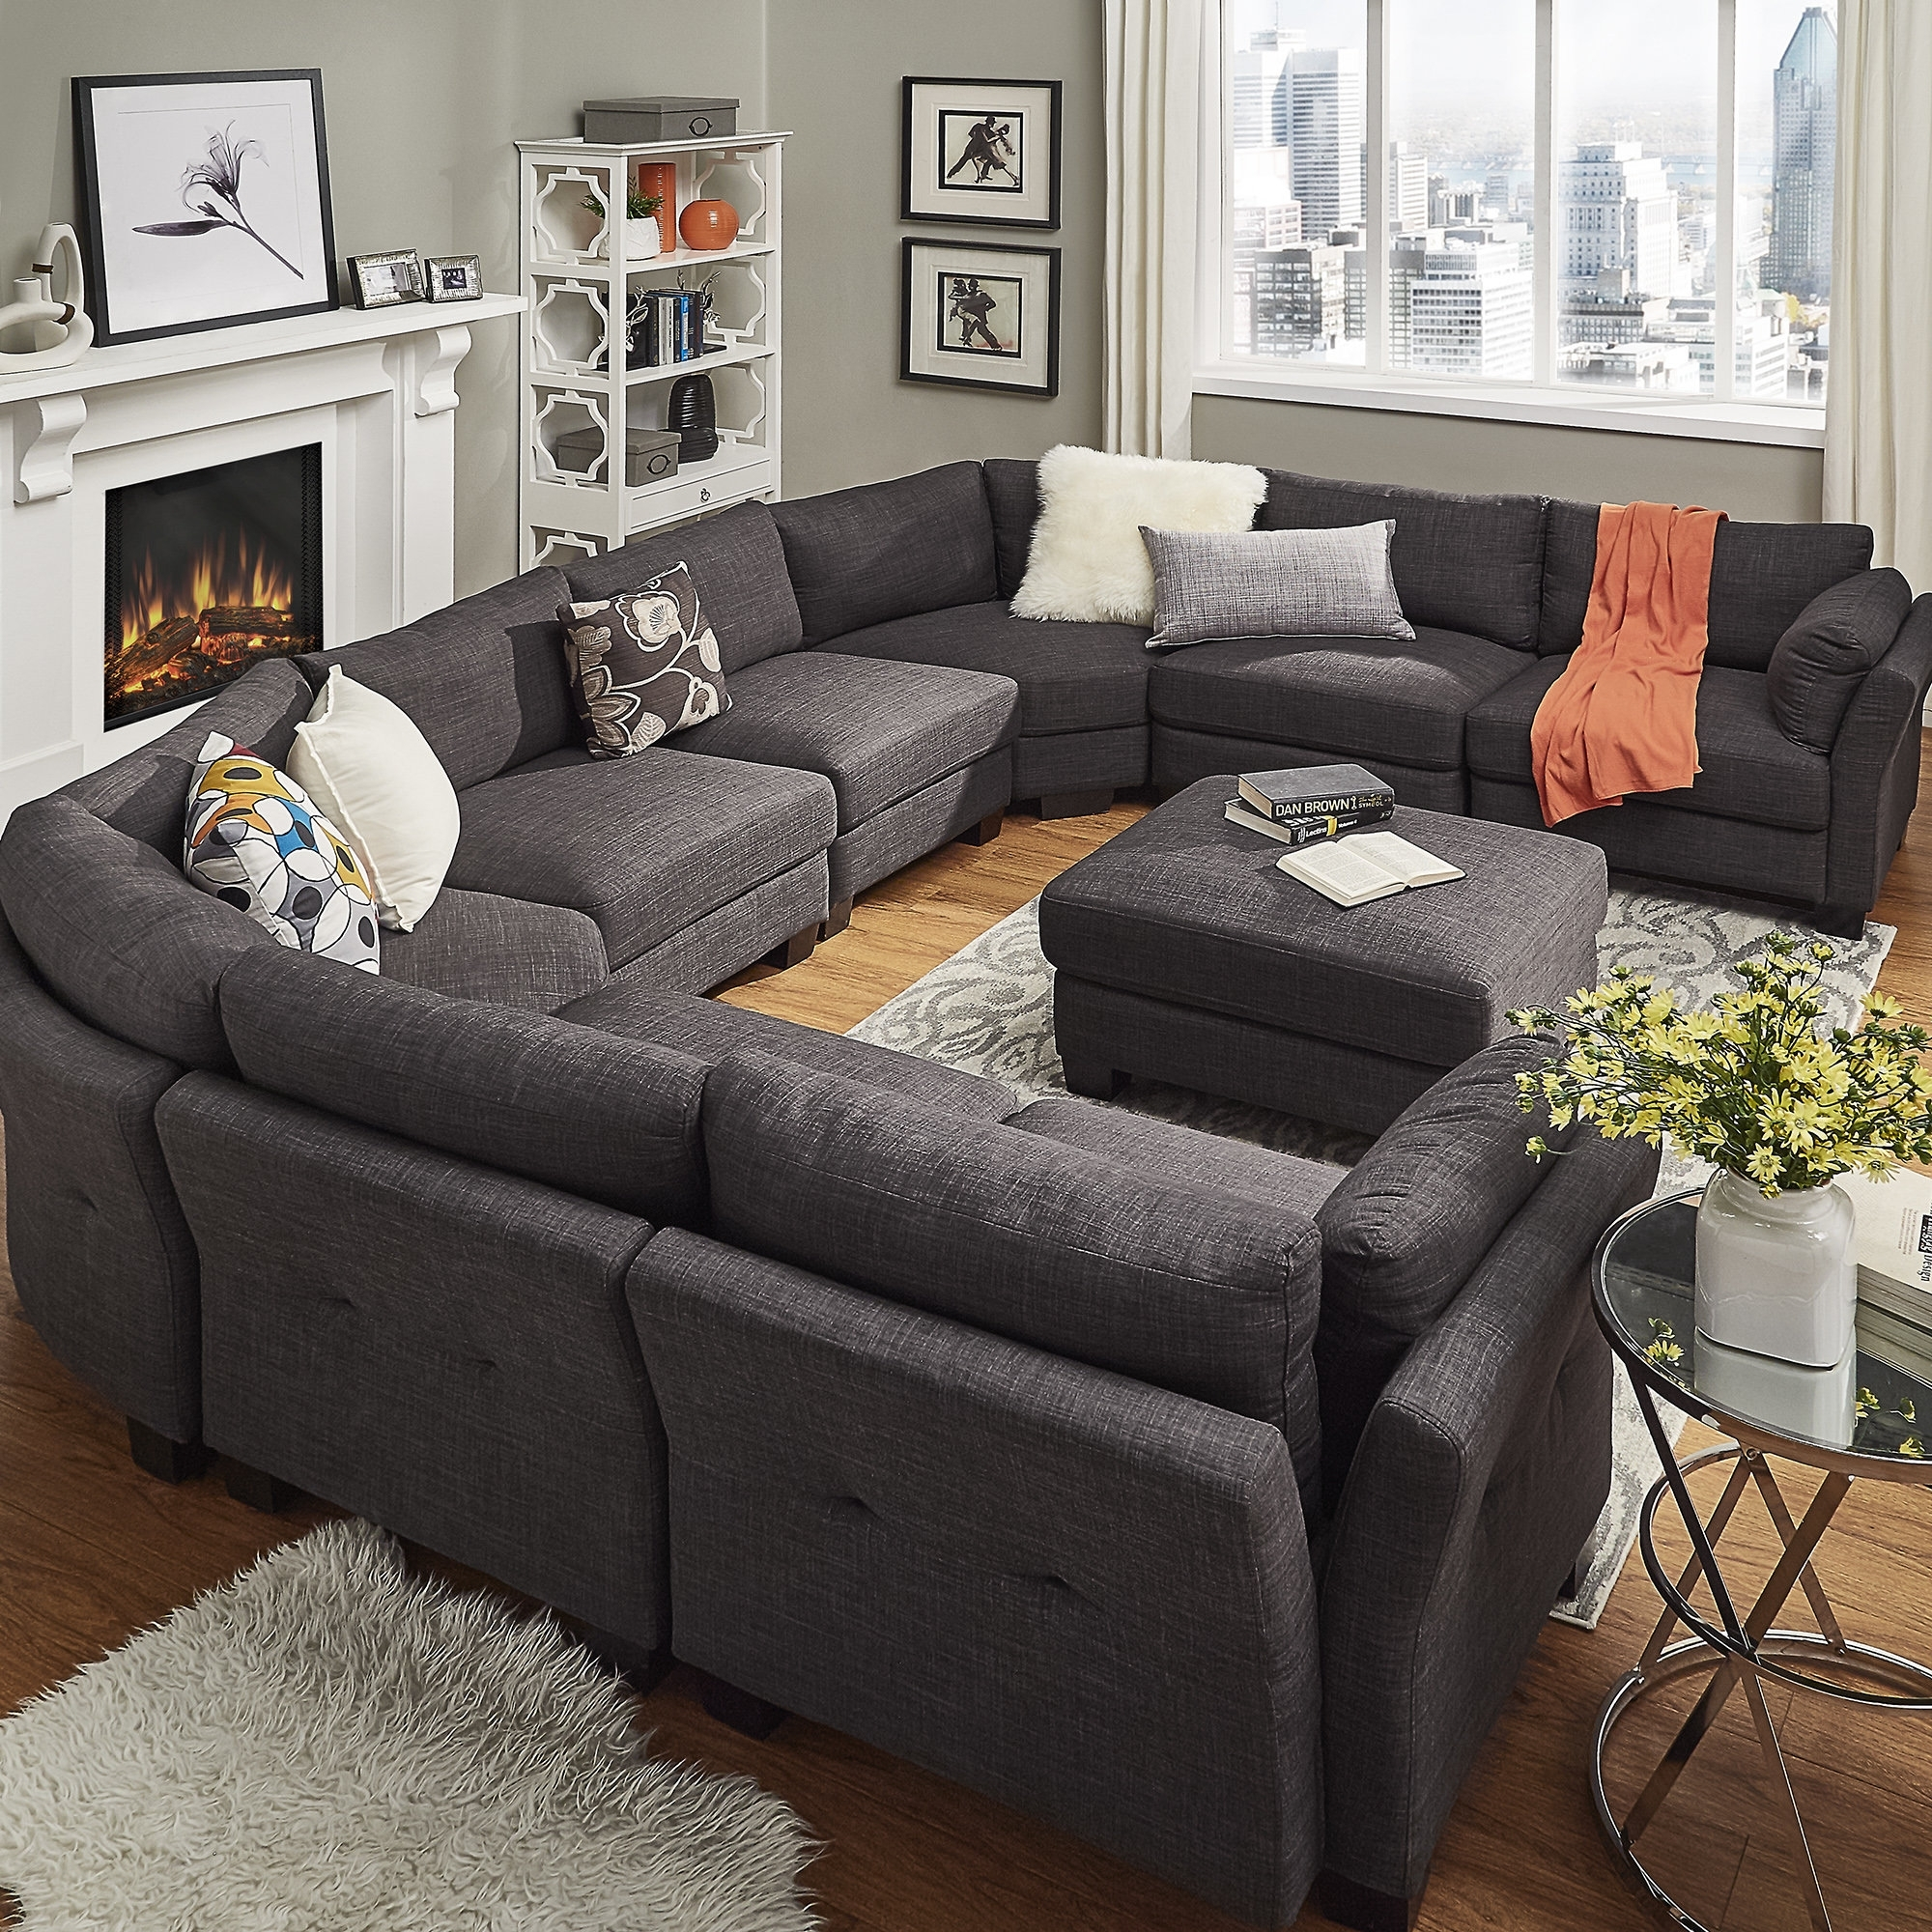 Mercury Row Alkmene Sectional Collection & Reviews | Wayfair Pertaining To Mesa Foam 2 Piece Sectionals (Image 13 of 25)